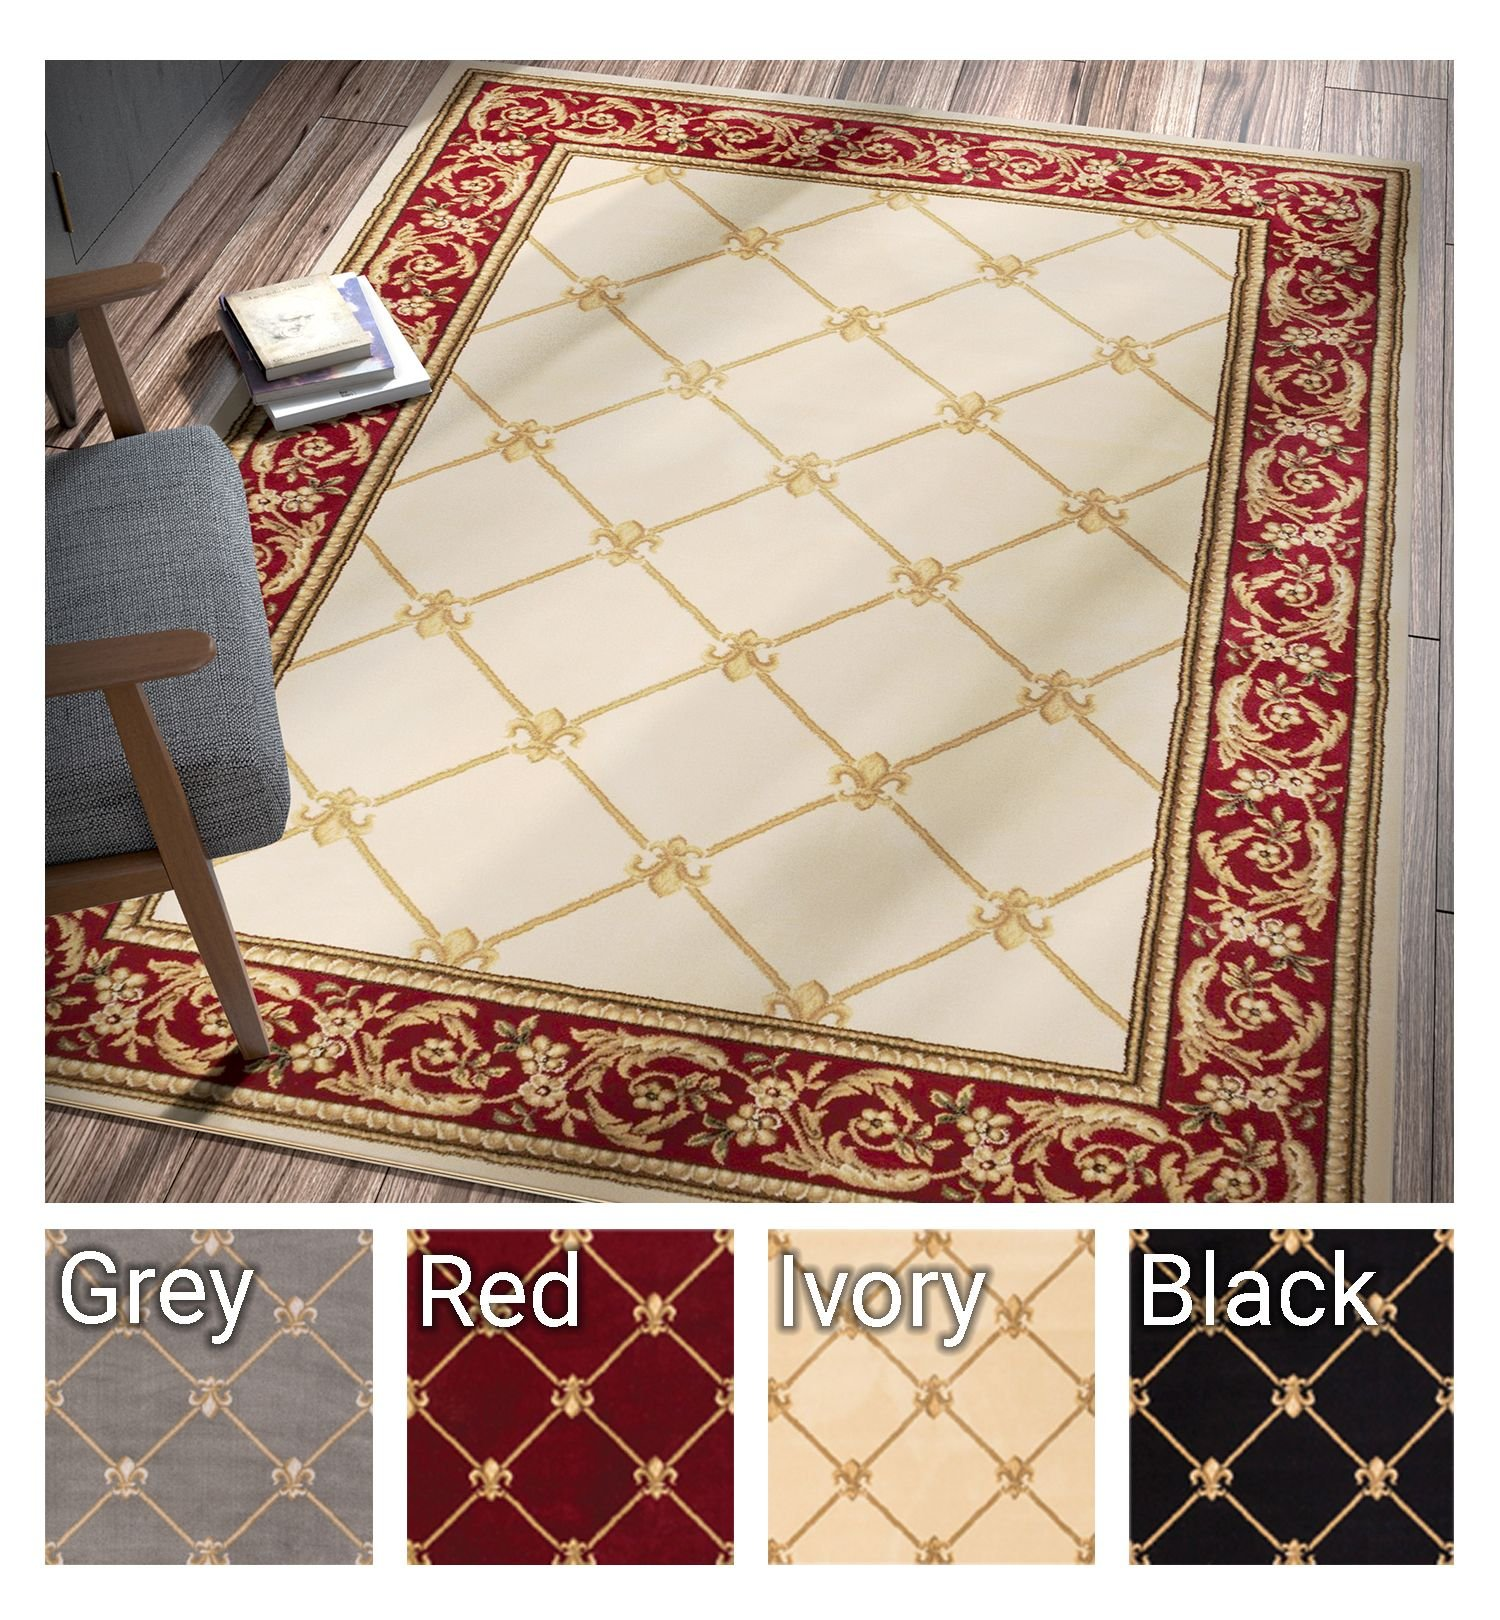 Patrician Trellis Ivory French European Formal Traditional 4x5 4x6 (3'11'' x 5'3'' Area Rug Easy to Clean Stain/Fade Resistant Shed Free Contemporary Floral Thick Soft Plush Living Dining Room Rug